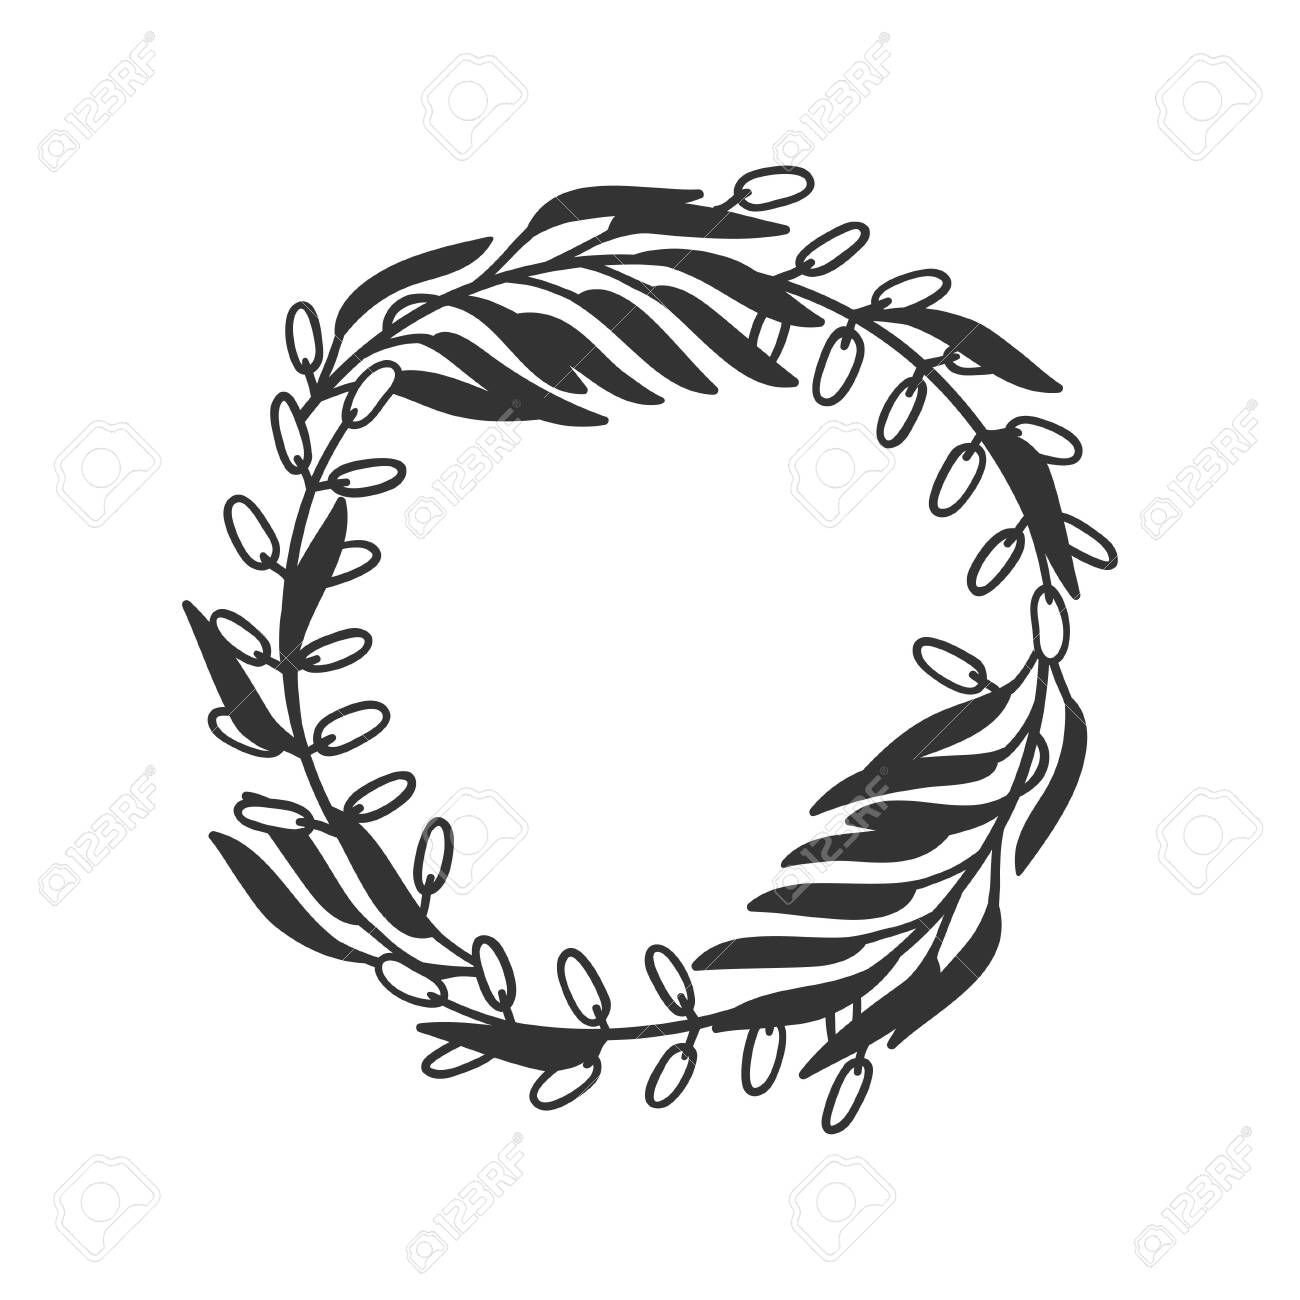 Hand drawn wreath for design use. Black Vector doodle